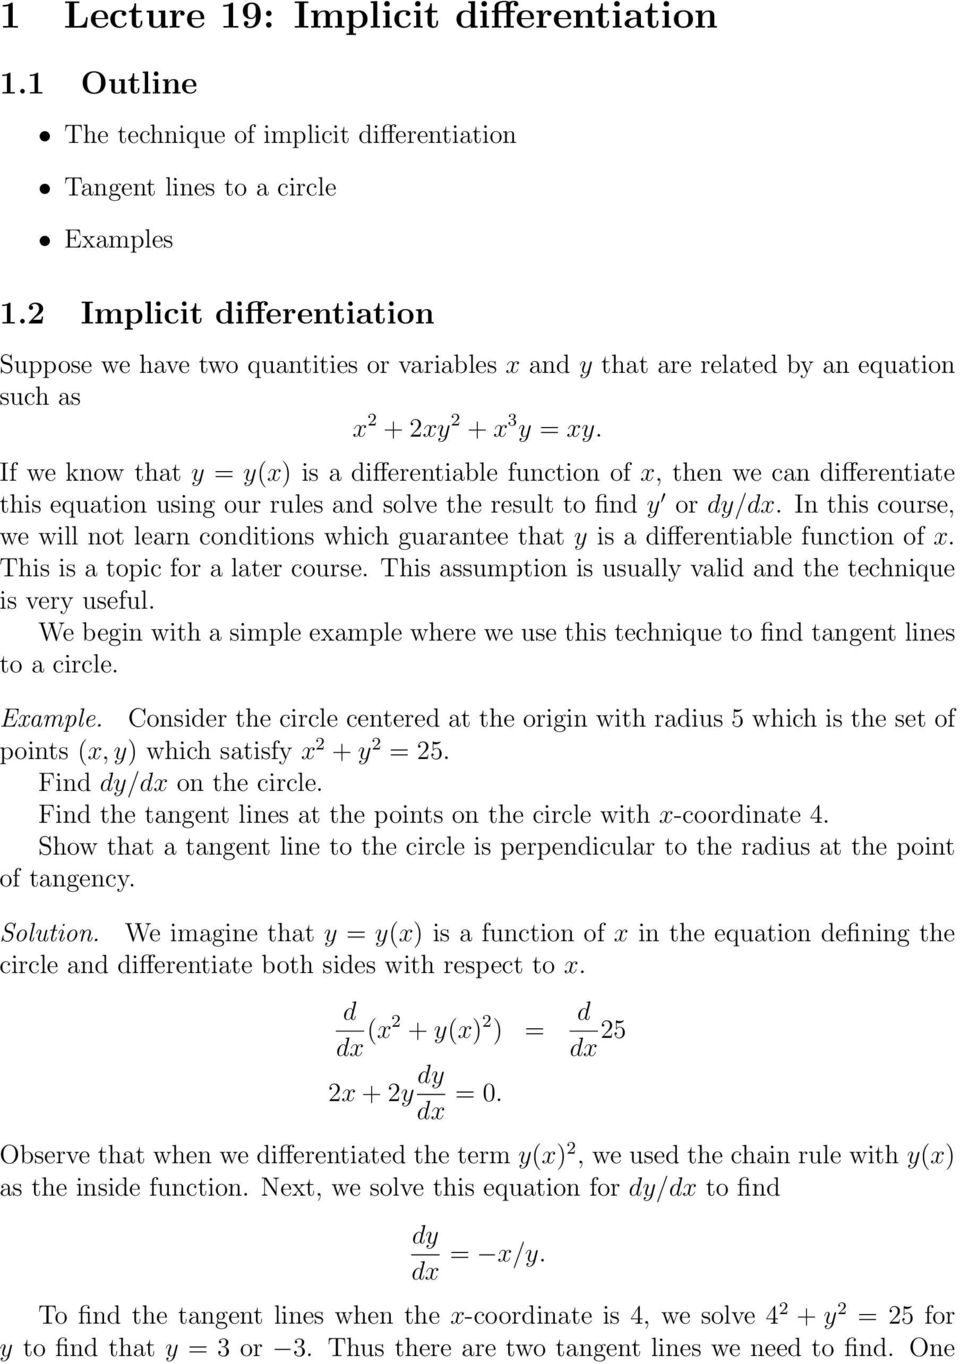 integration of implicit functions pdf